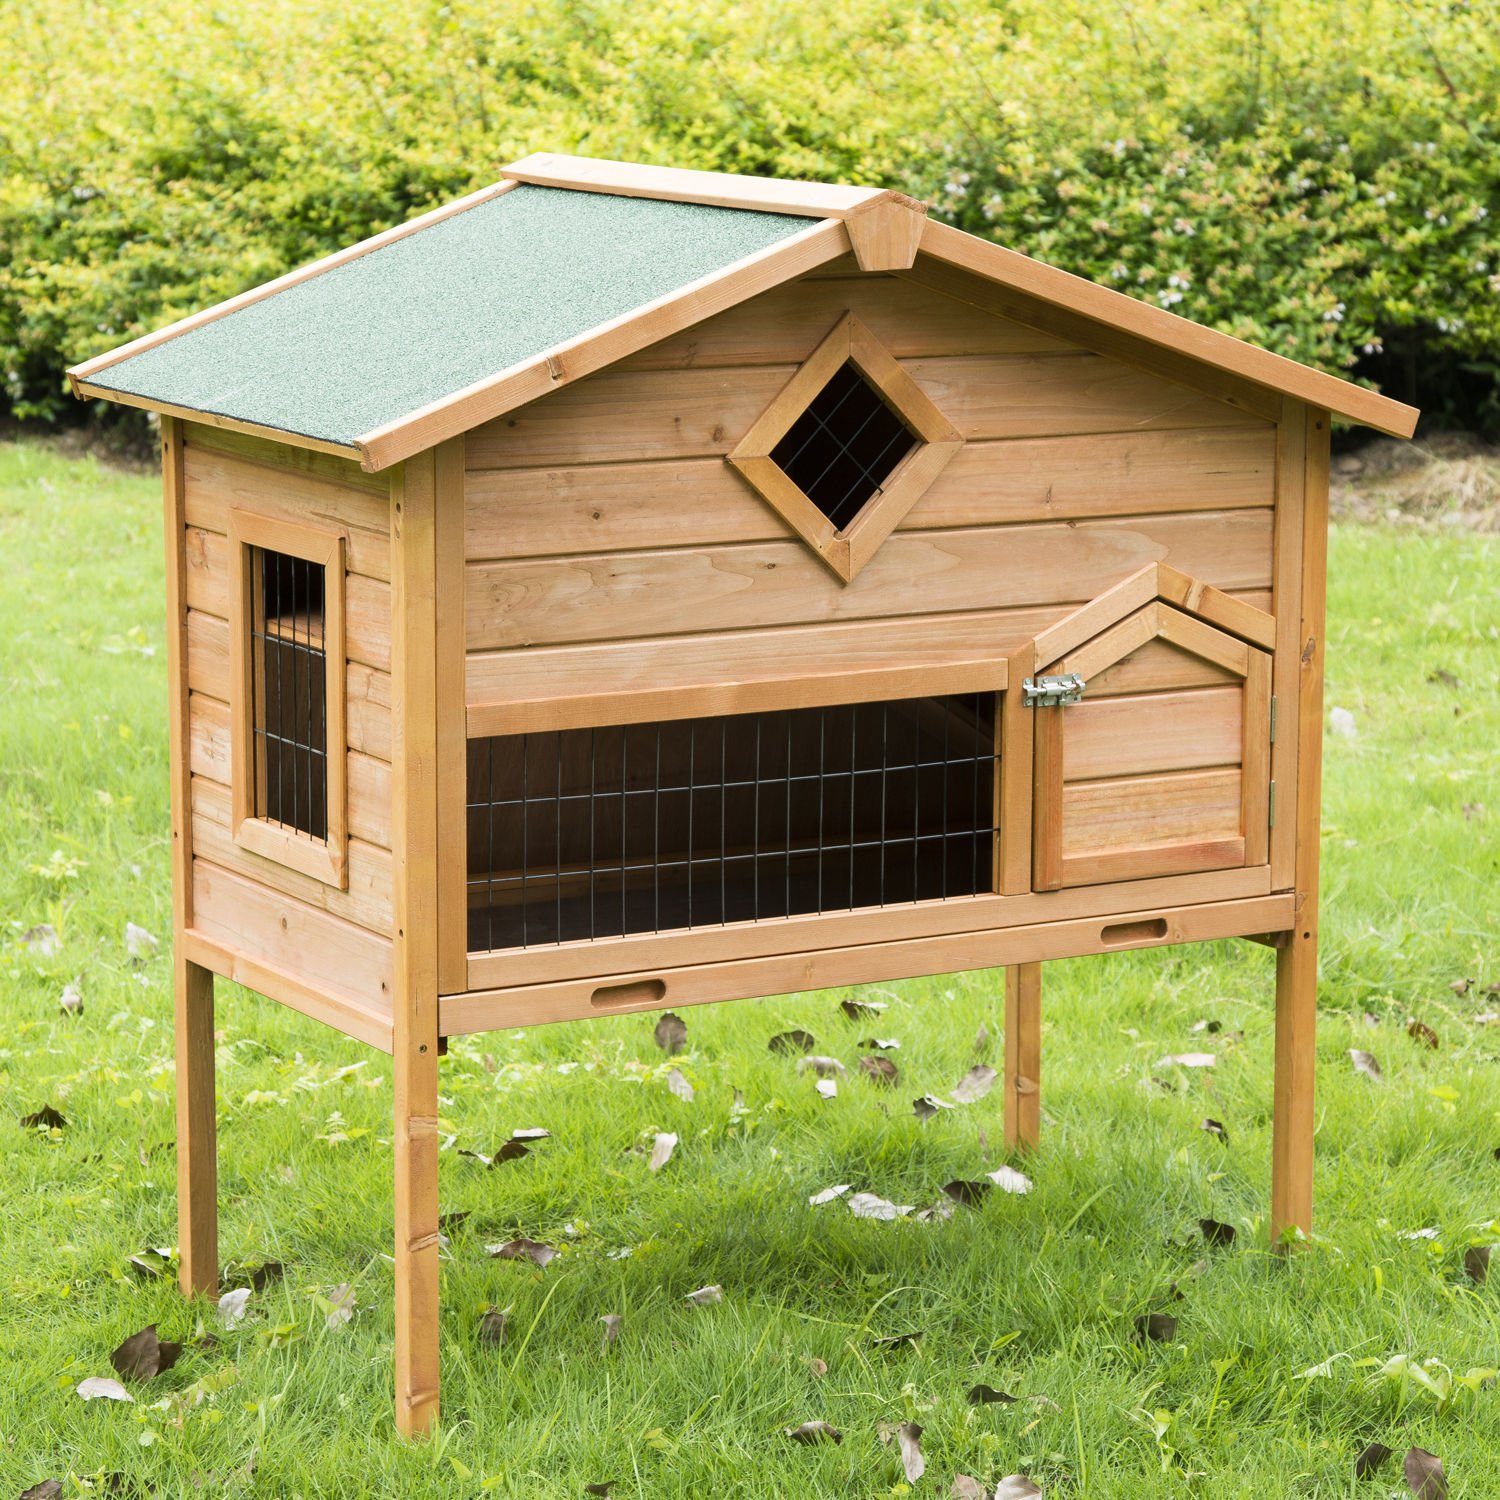 GHP Home & Garden 43.3''W×26''D×45.3''H 2-Story Sturdy Natural Wood Animal Cage